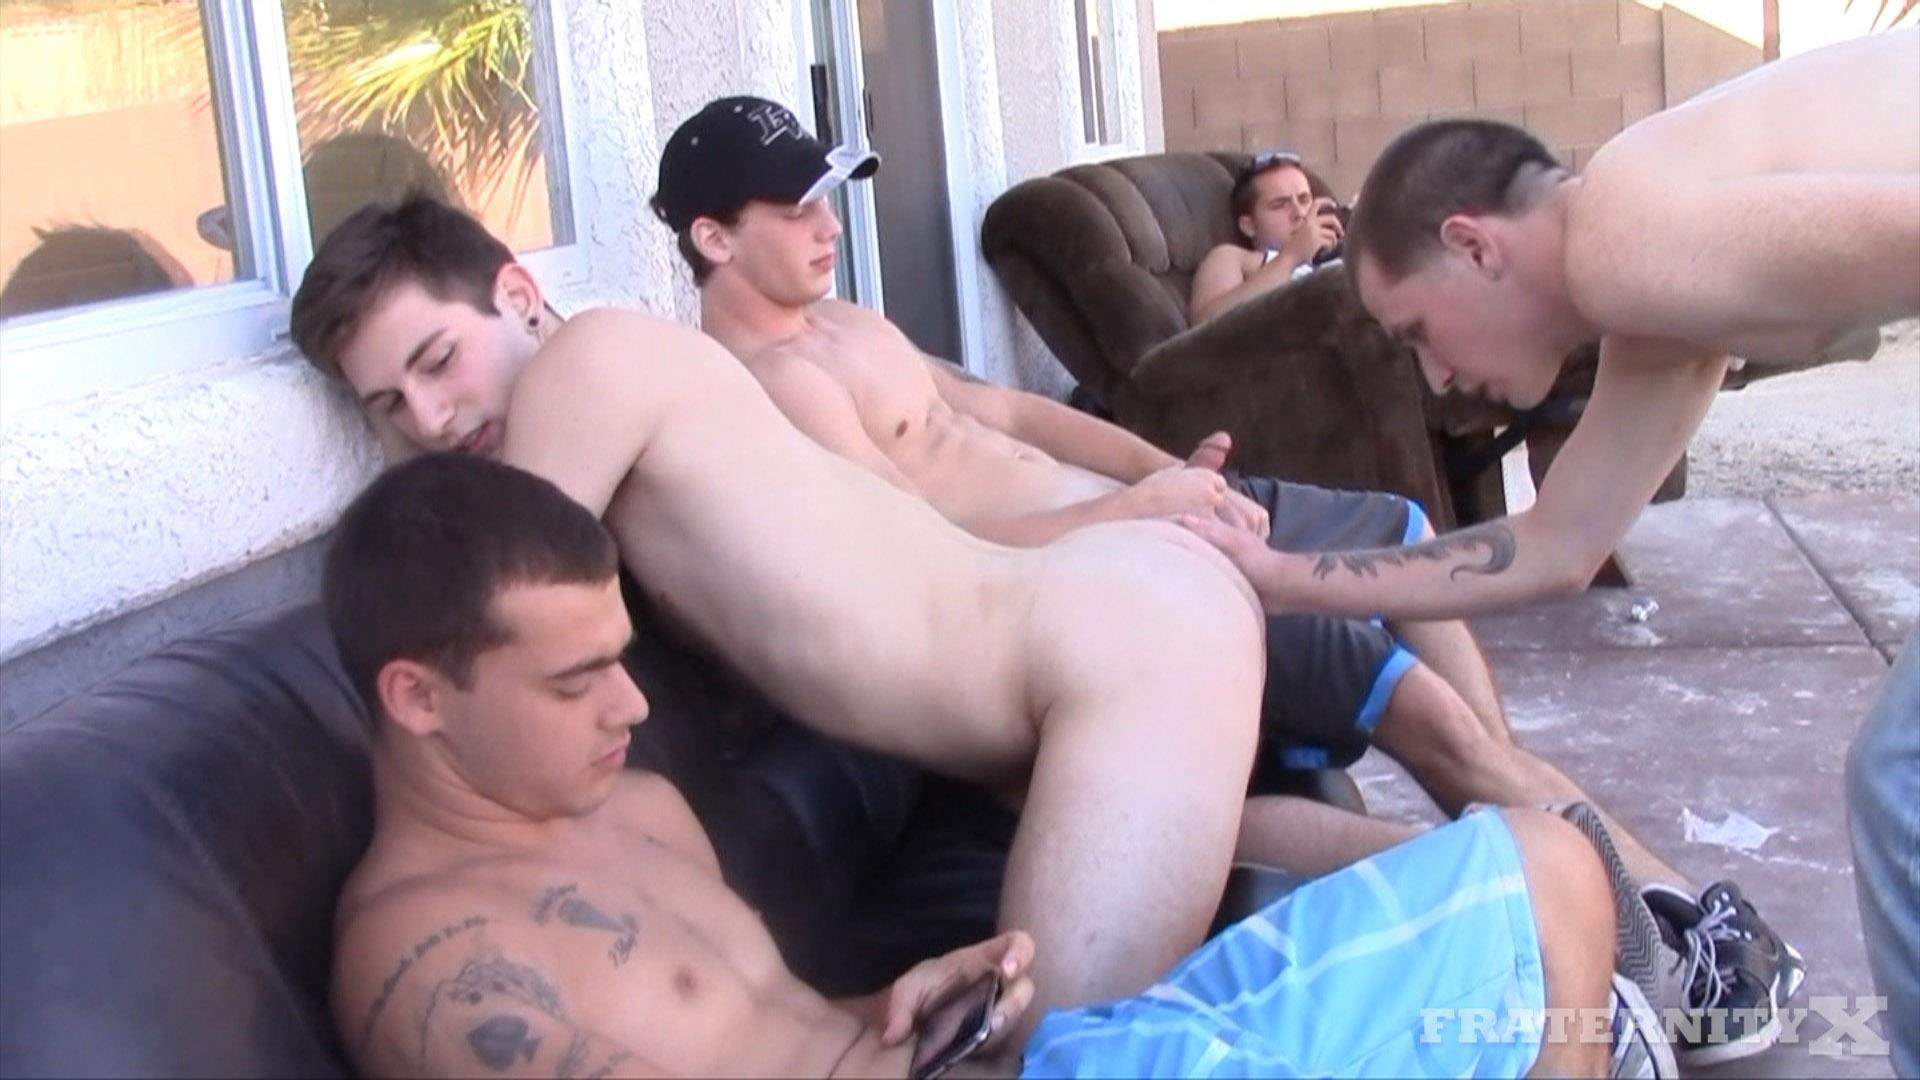 Fraternity X Frenchy Naked Frat Guys Barebacking Outside Big Dicks Amateur Gay Porn 05 Fraternity Boys Fucking Bareback Outside On The Frat Patio